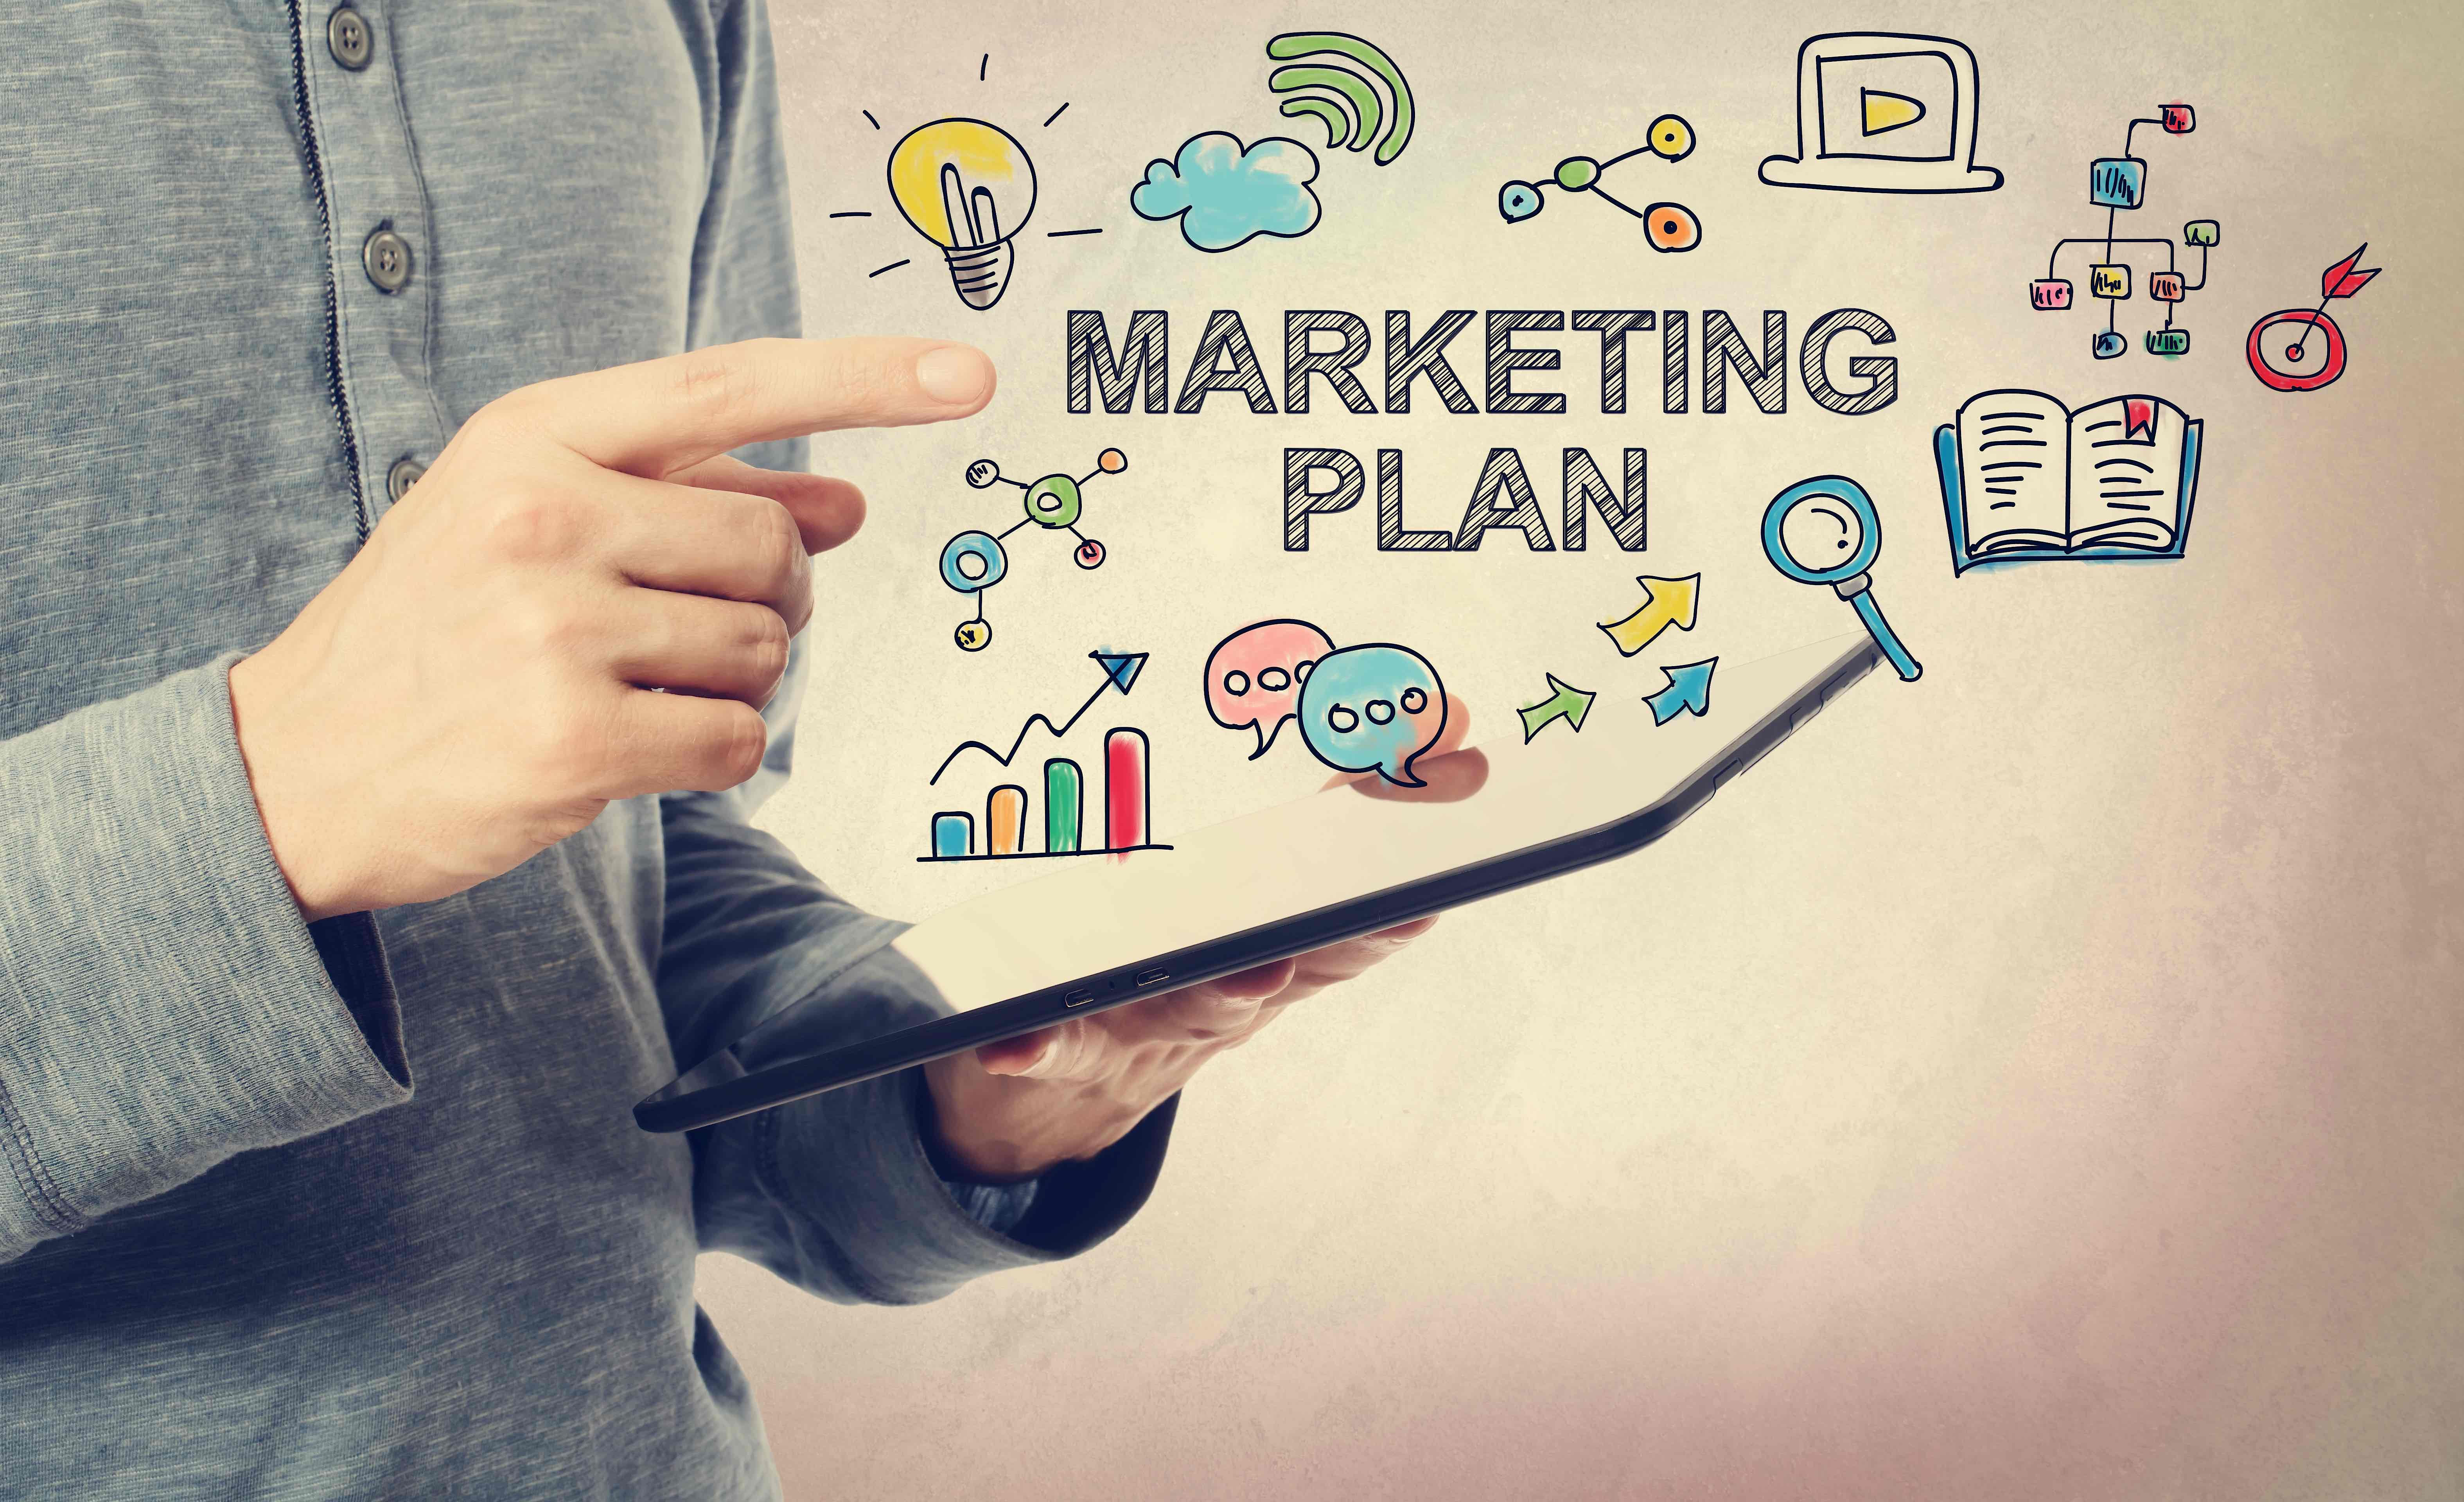 Marketing strategy resolutions